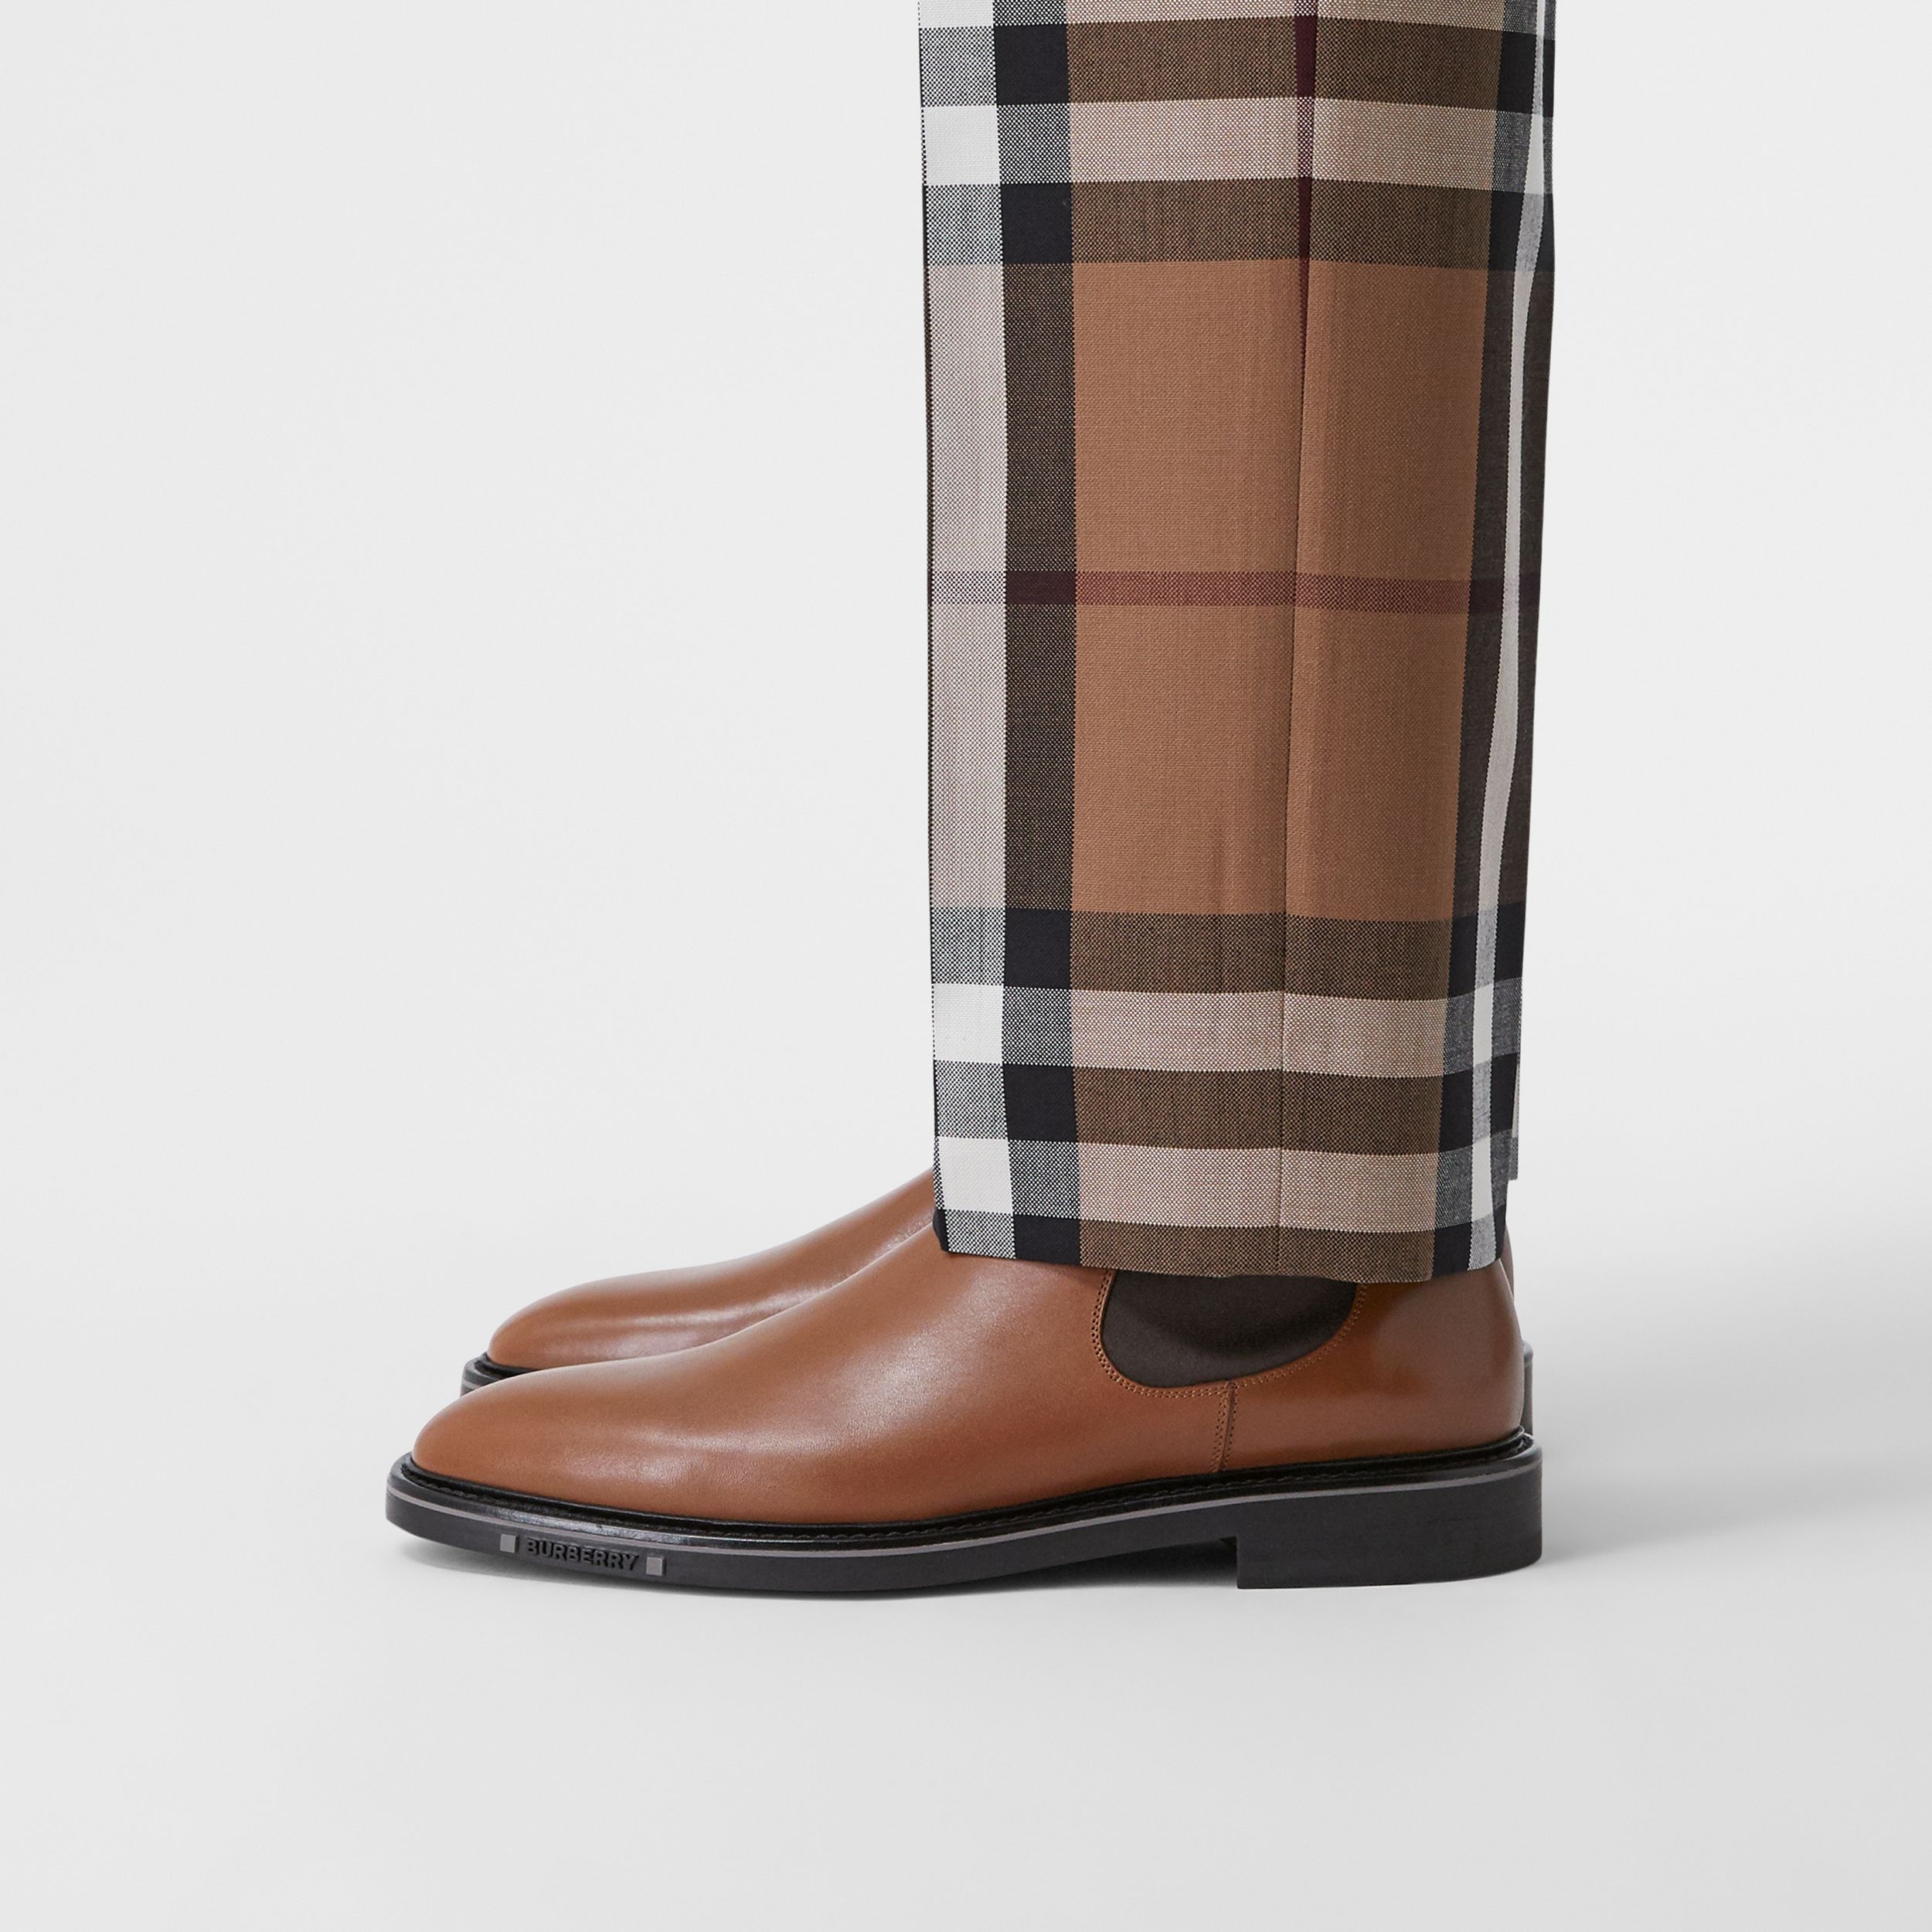 Logo Detail Leather Chelsea Boots in Tan - Men | Burberry - 3